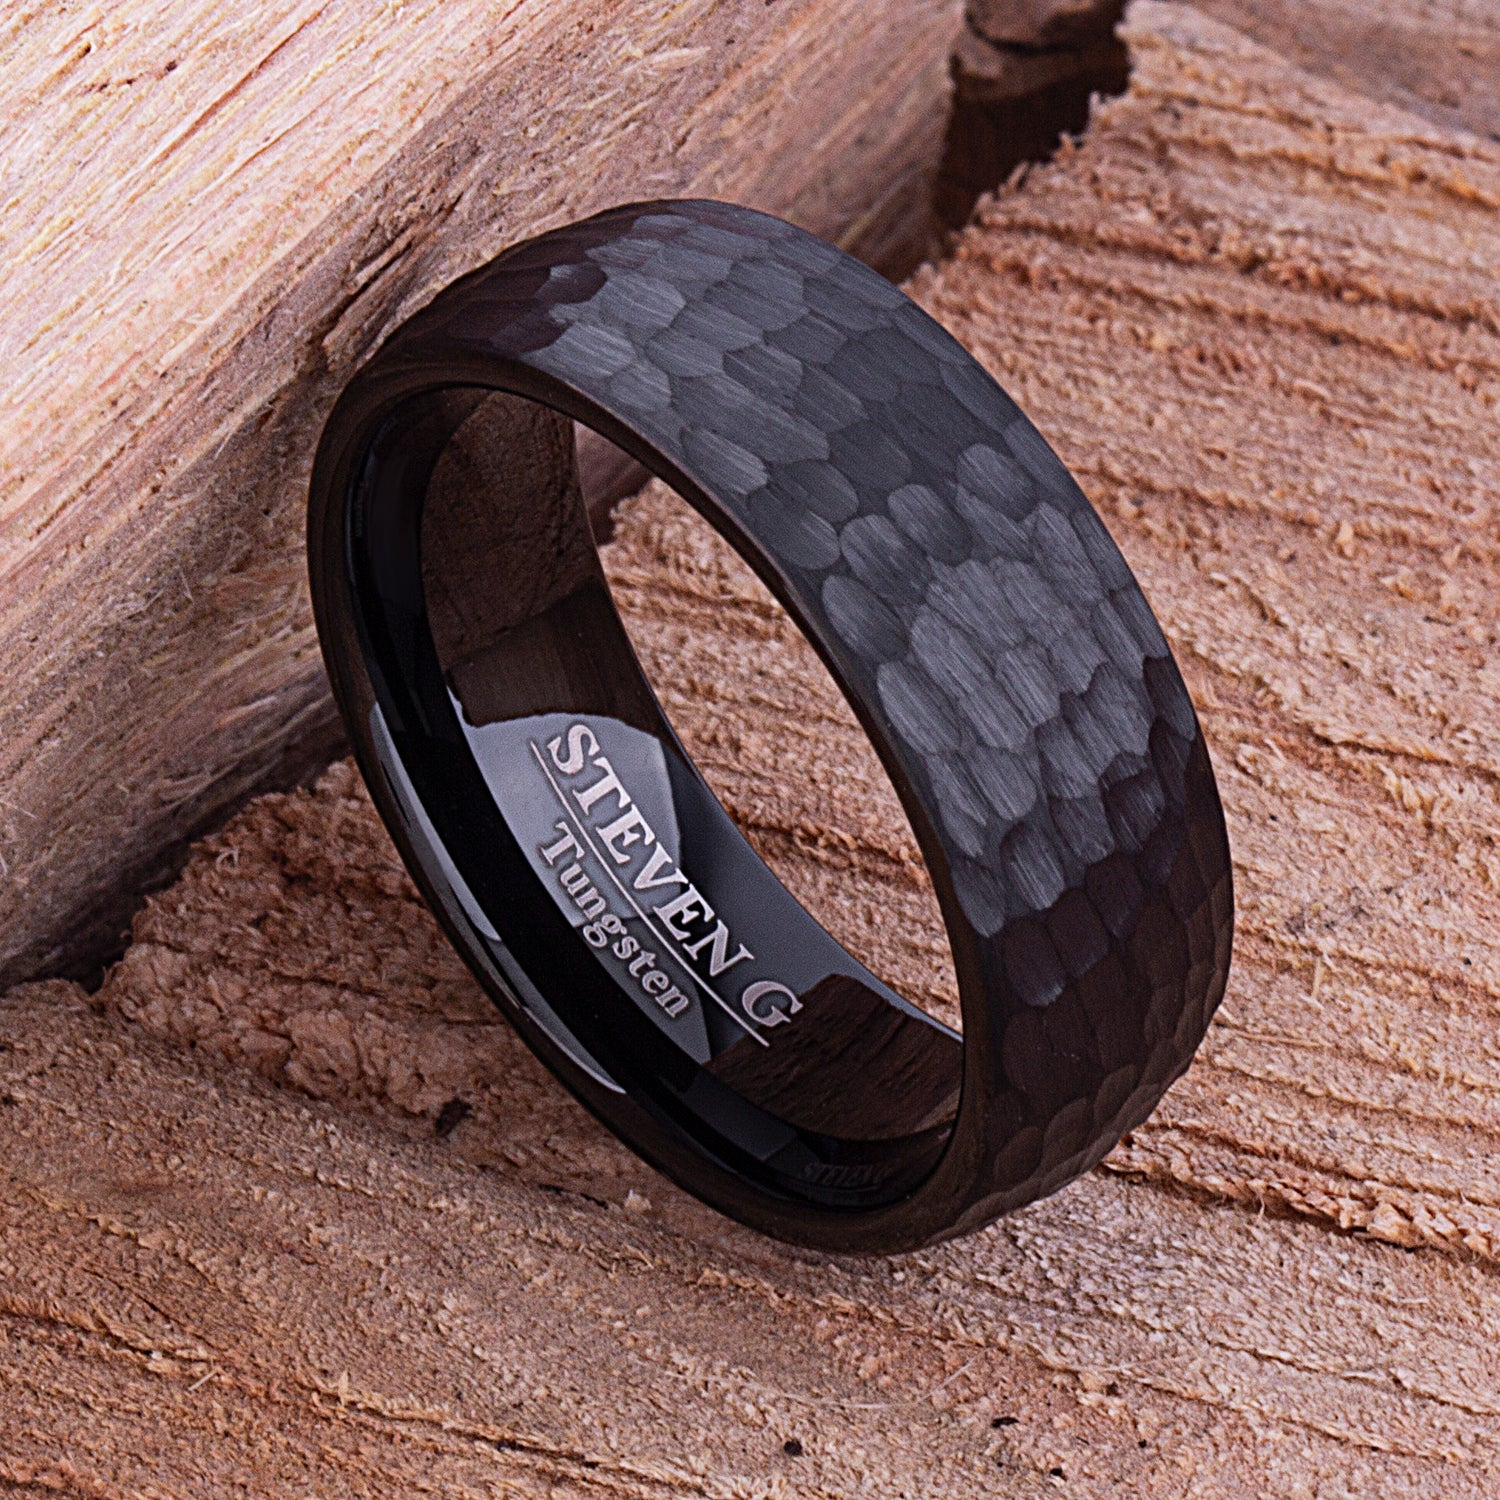 Black Tungsten Band 8mm - TCR093 black men's wedding or engagement band or promise ring for boyfriend